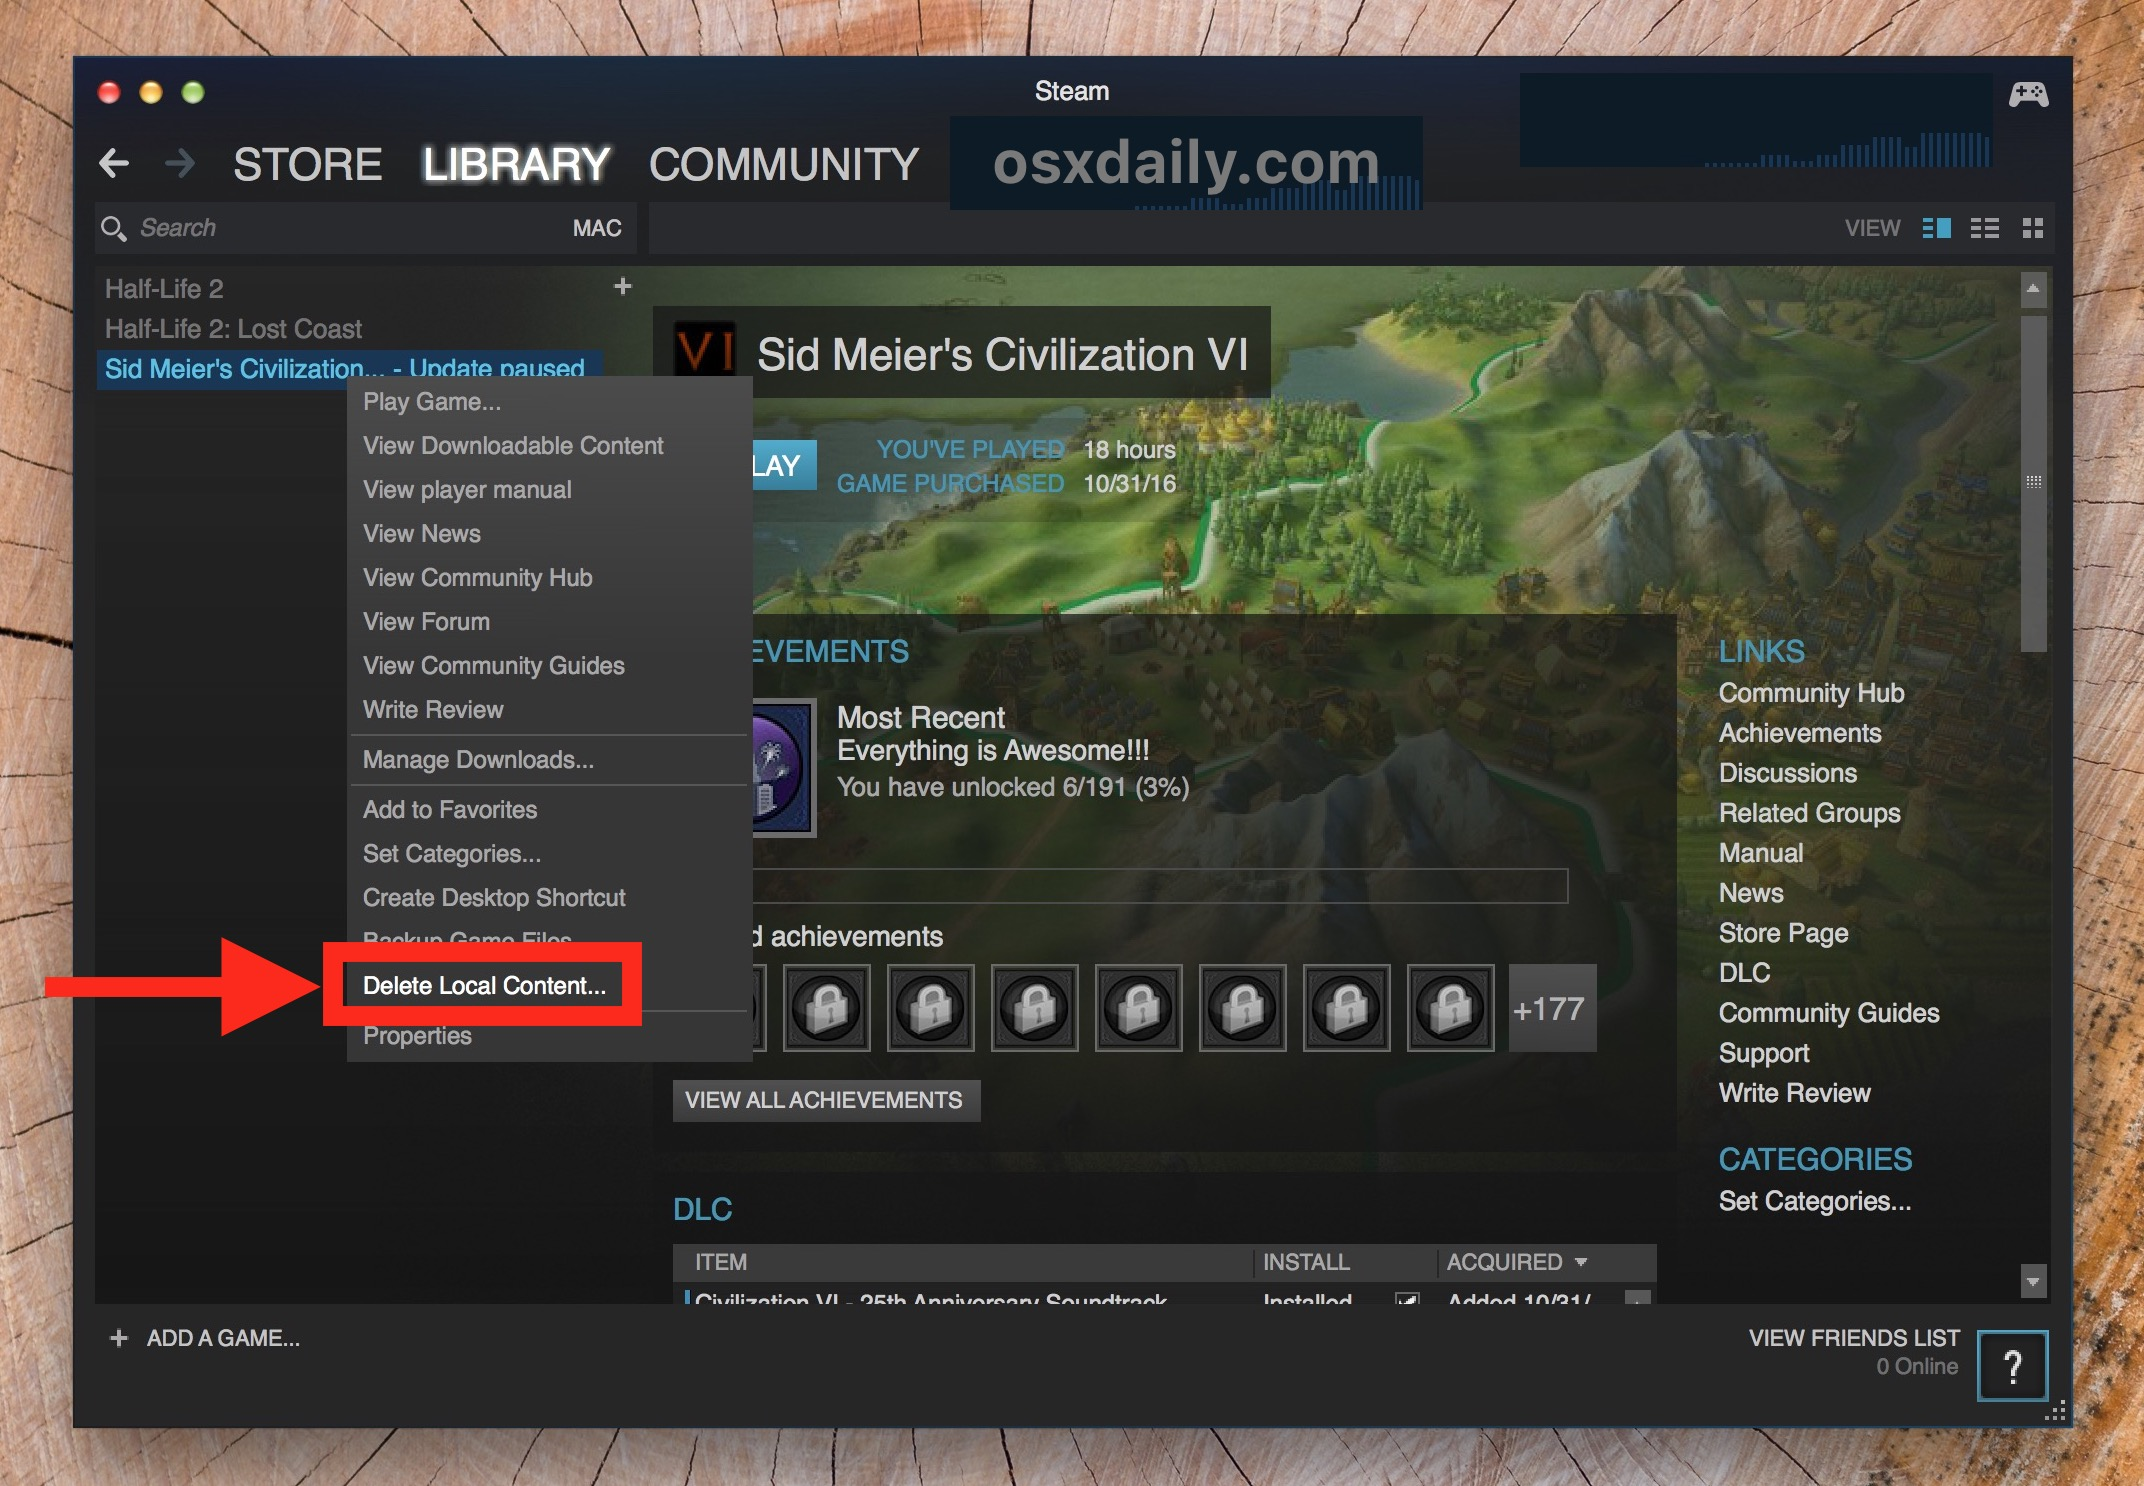 How to uninstall Steam games and delete the game from the computer